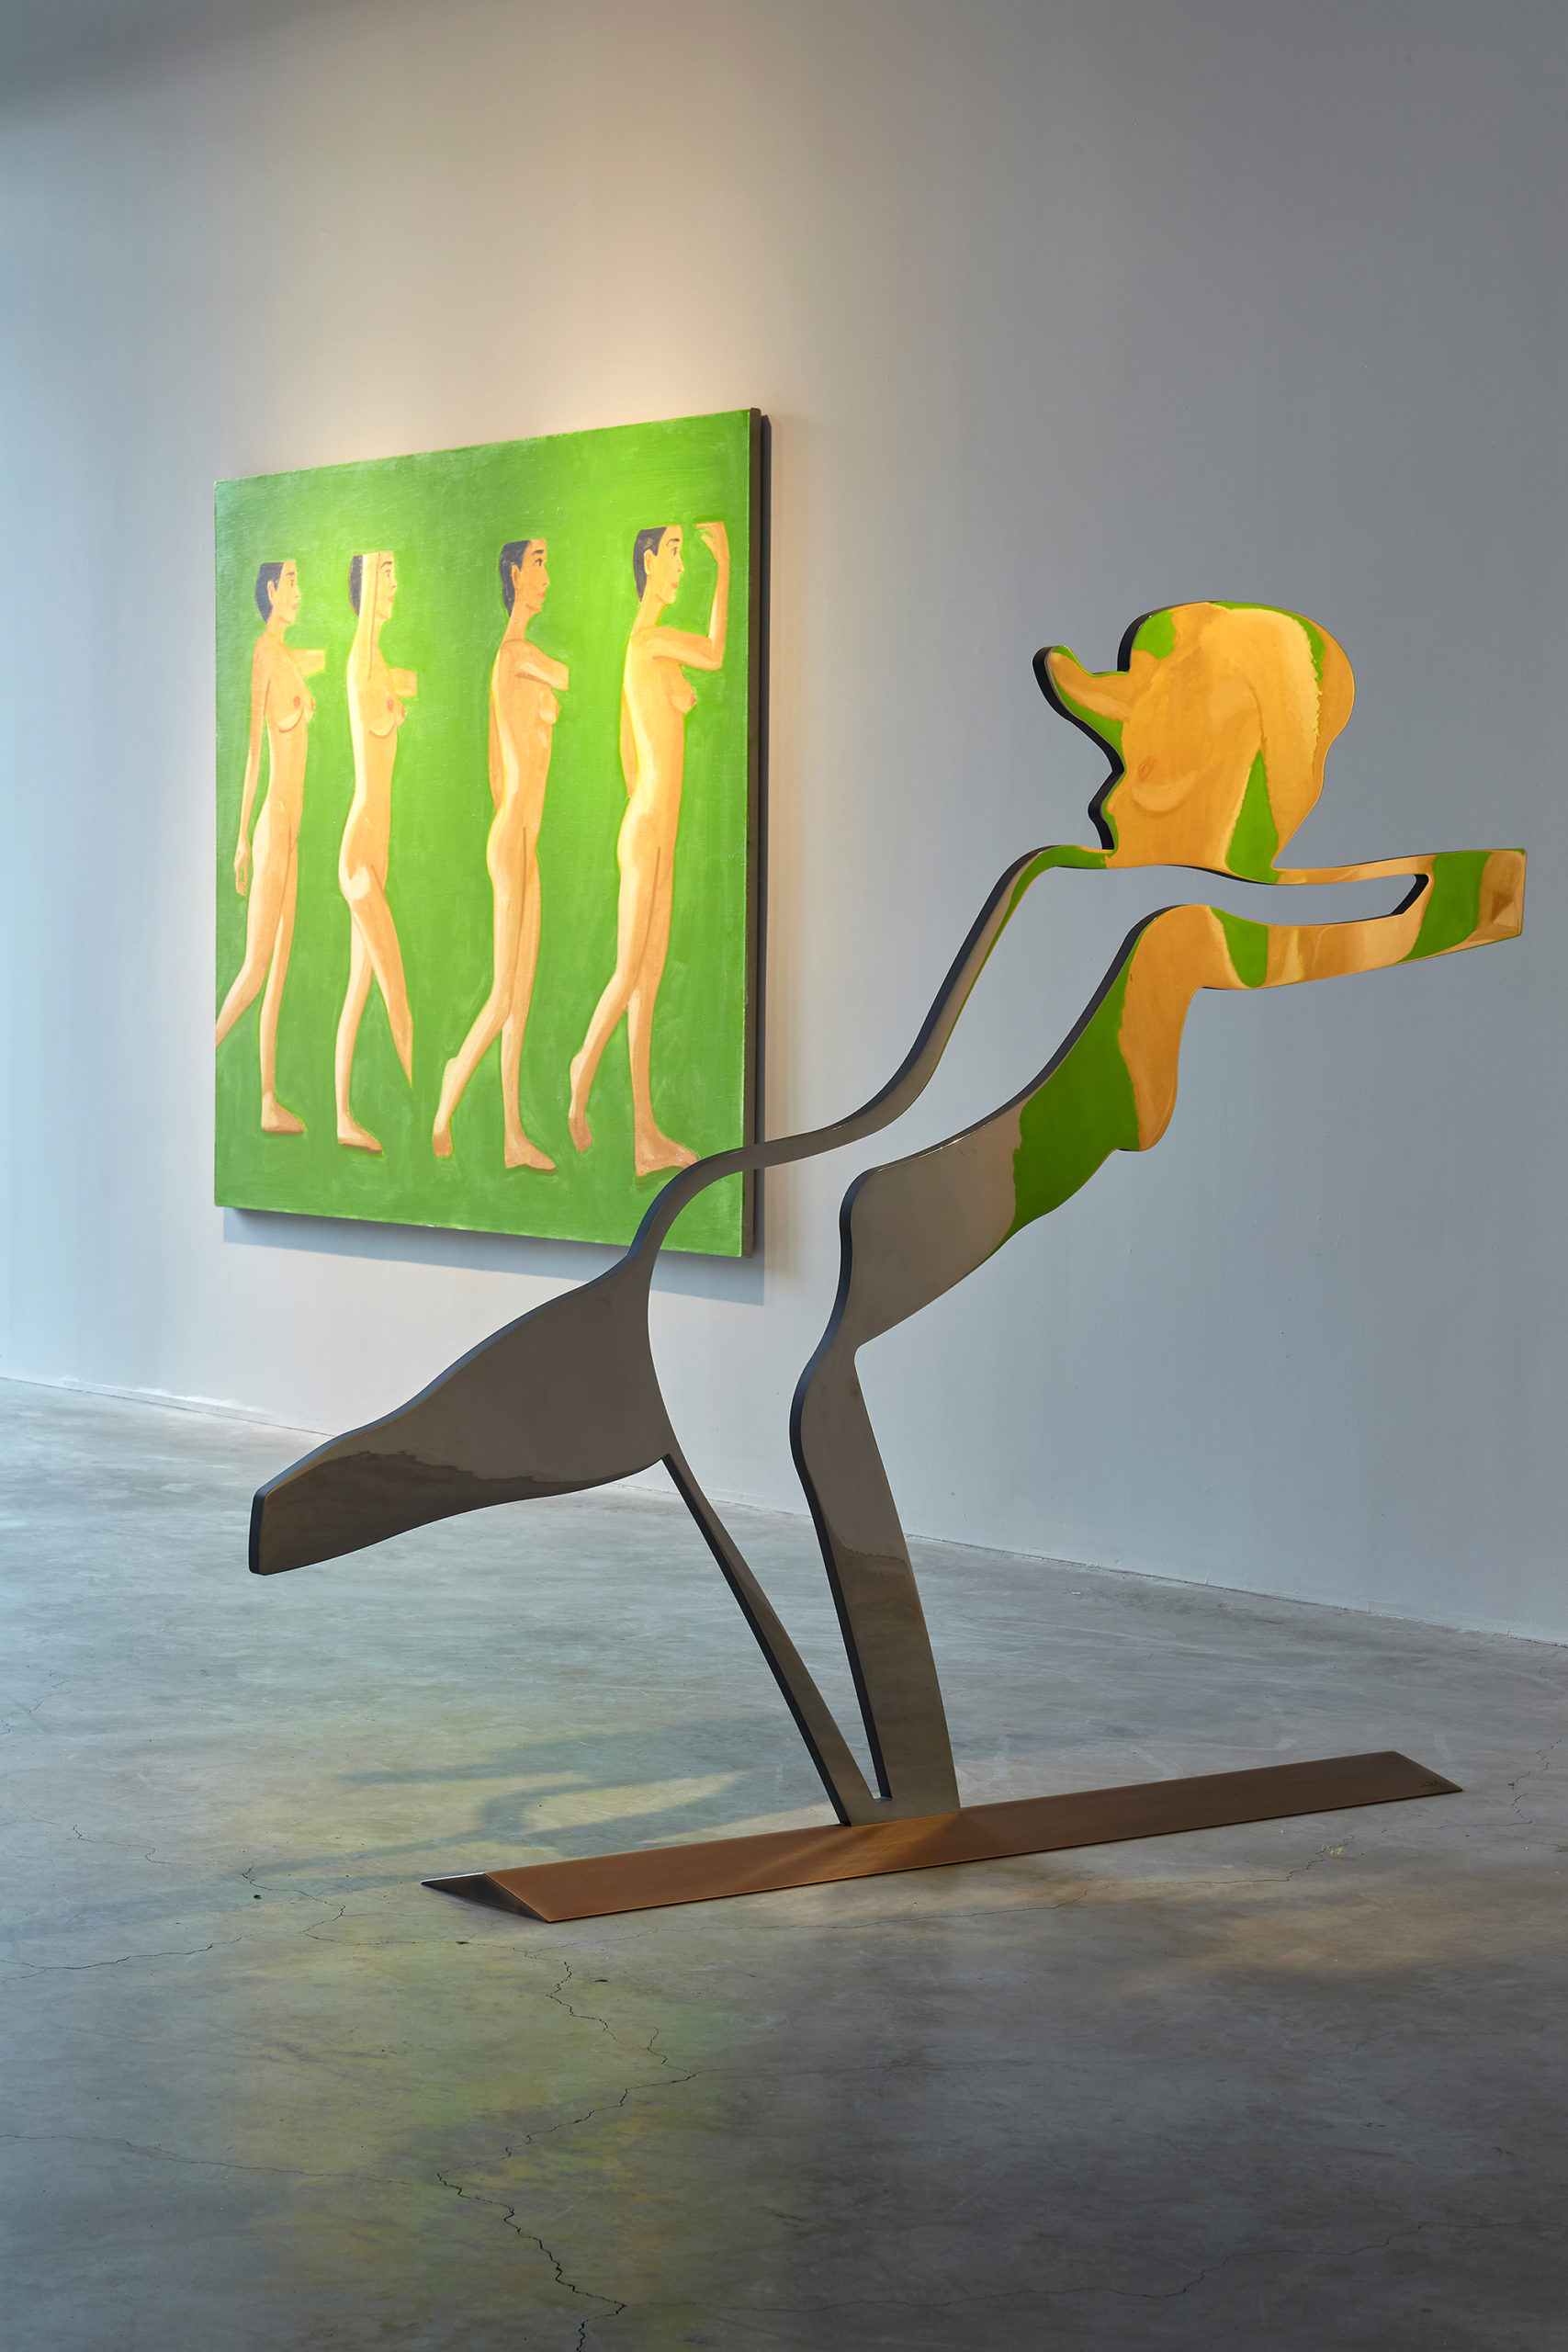 Alex Katz Dancer 3 (Outline) installation at Gavin Brown